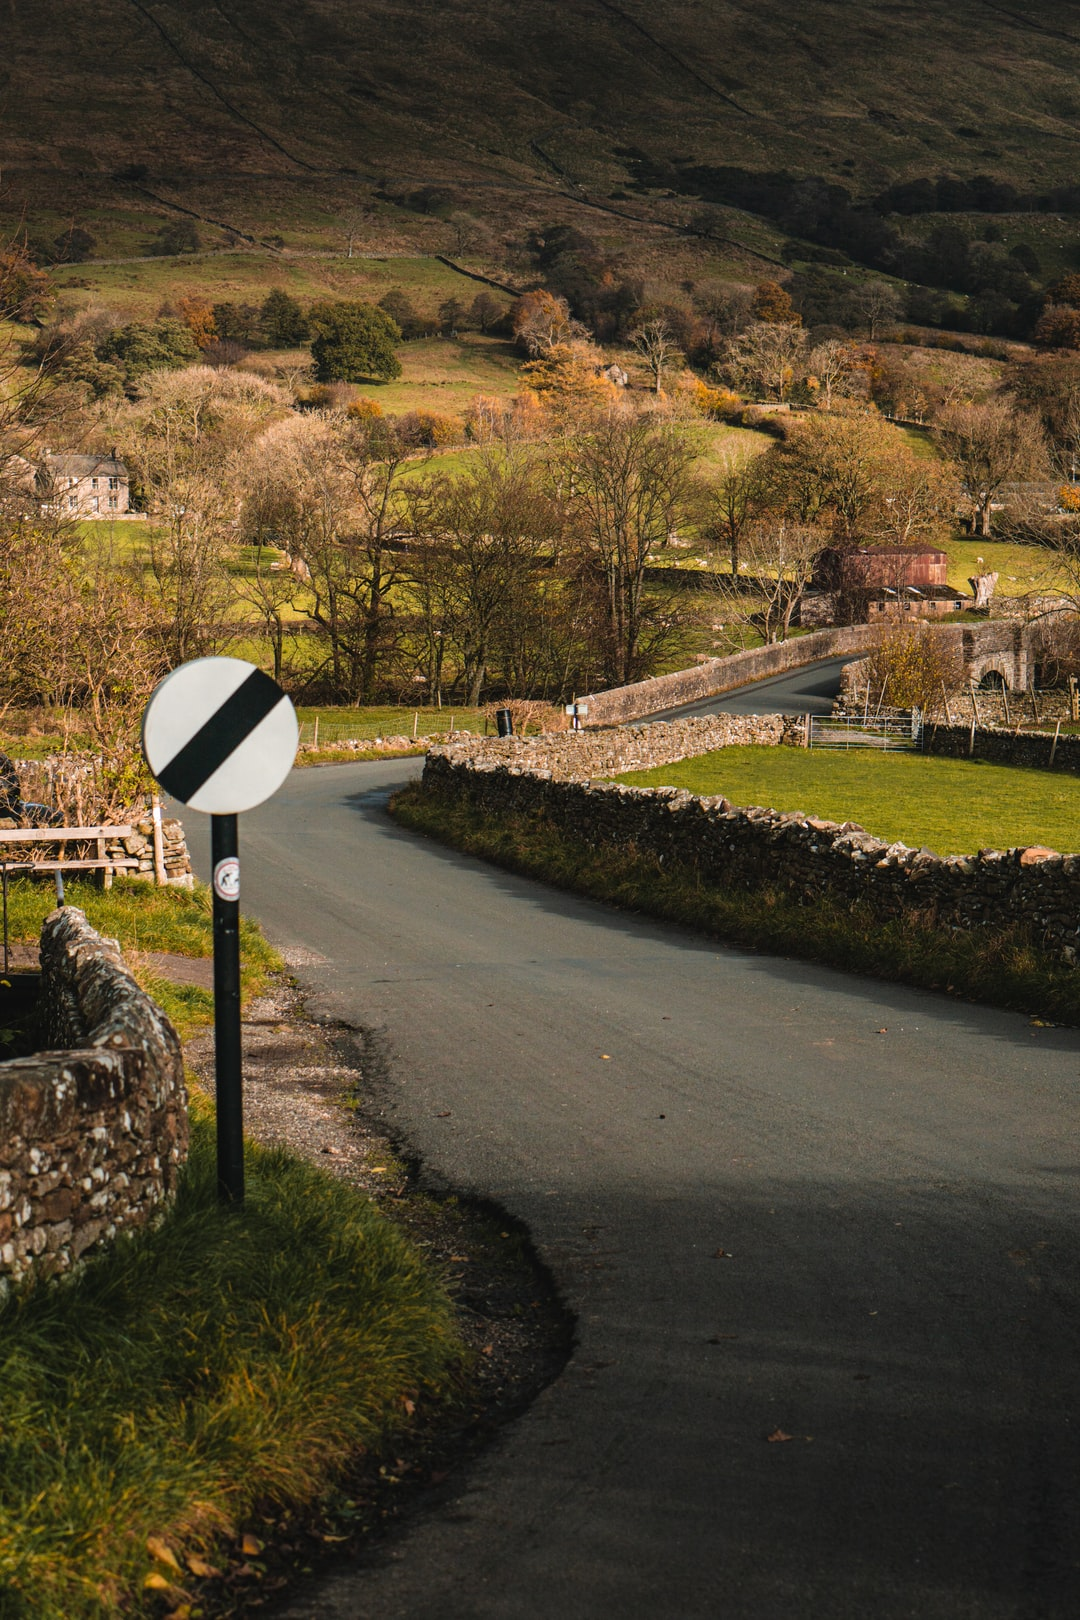 Roads leading out Dent, in Dentdale, the Yorkshire Dales.